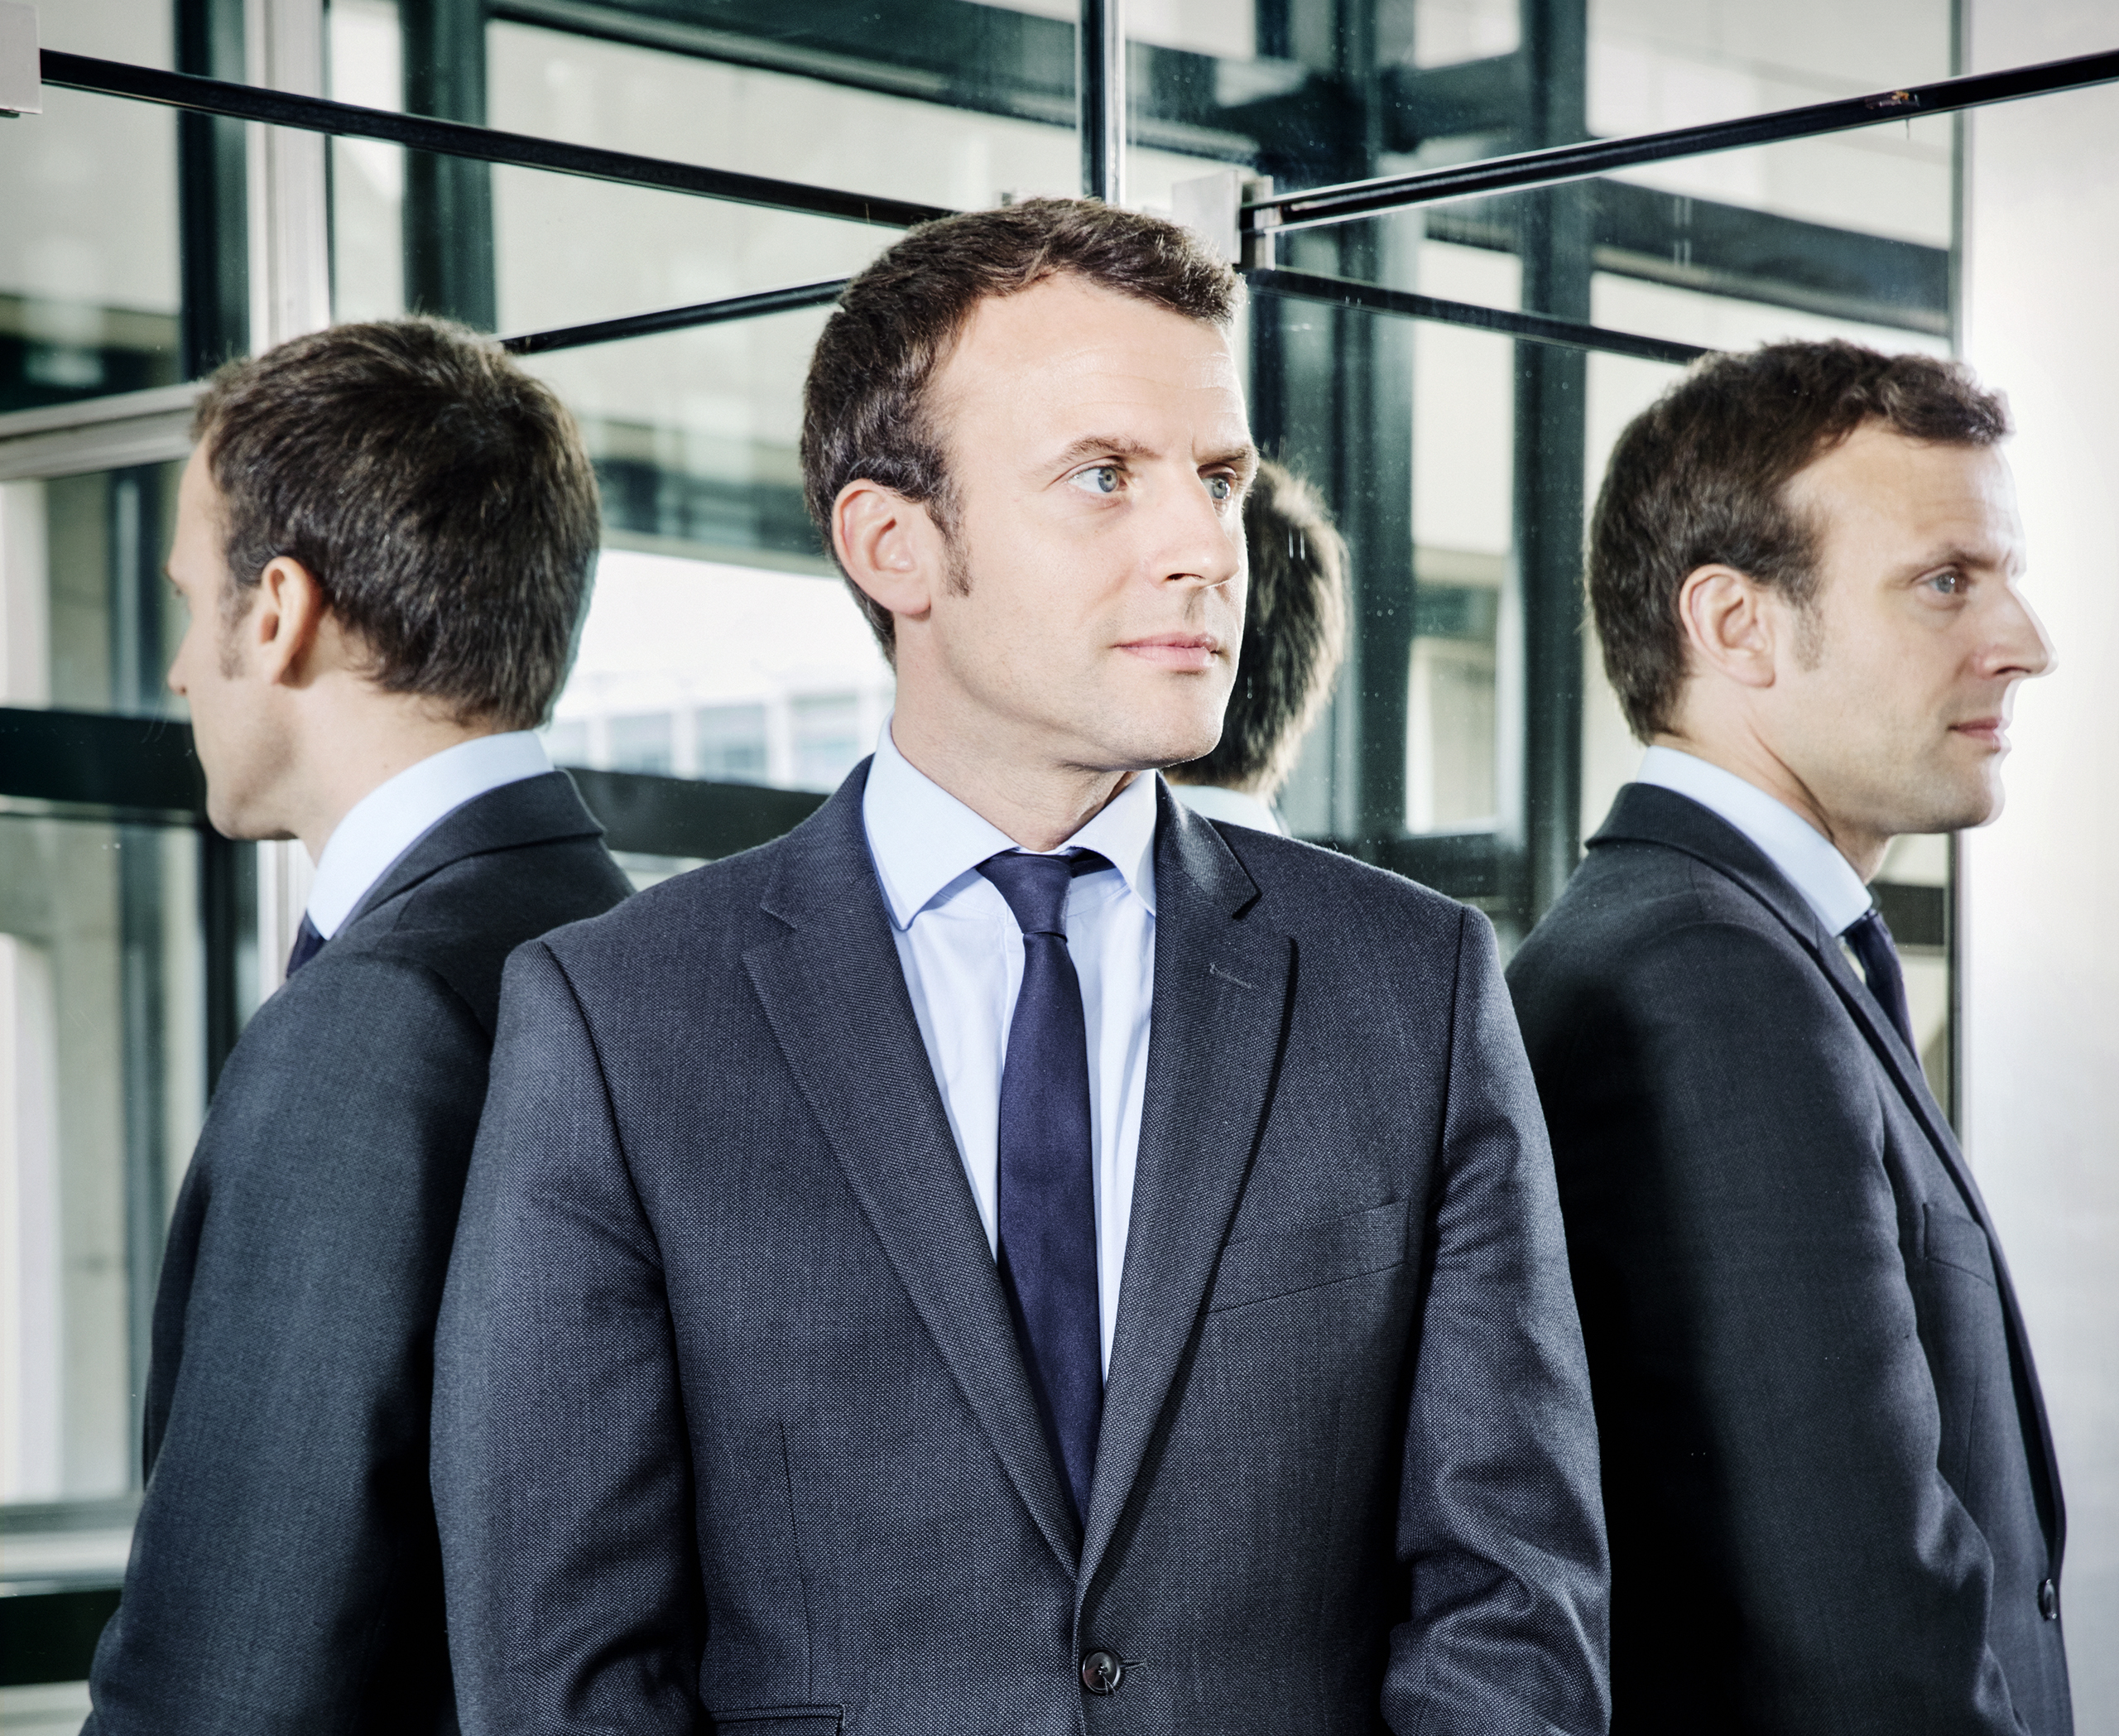 Emmanuel Macron, France's Minister for the Economy, Industry and Digital Affairs, in the Ministry of Economy and Finance in Paris on June 13, 2016.